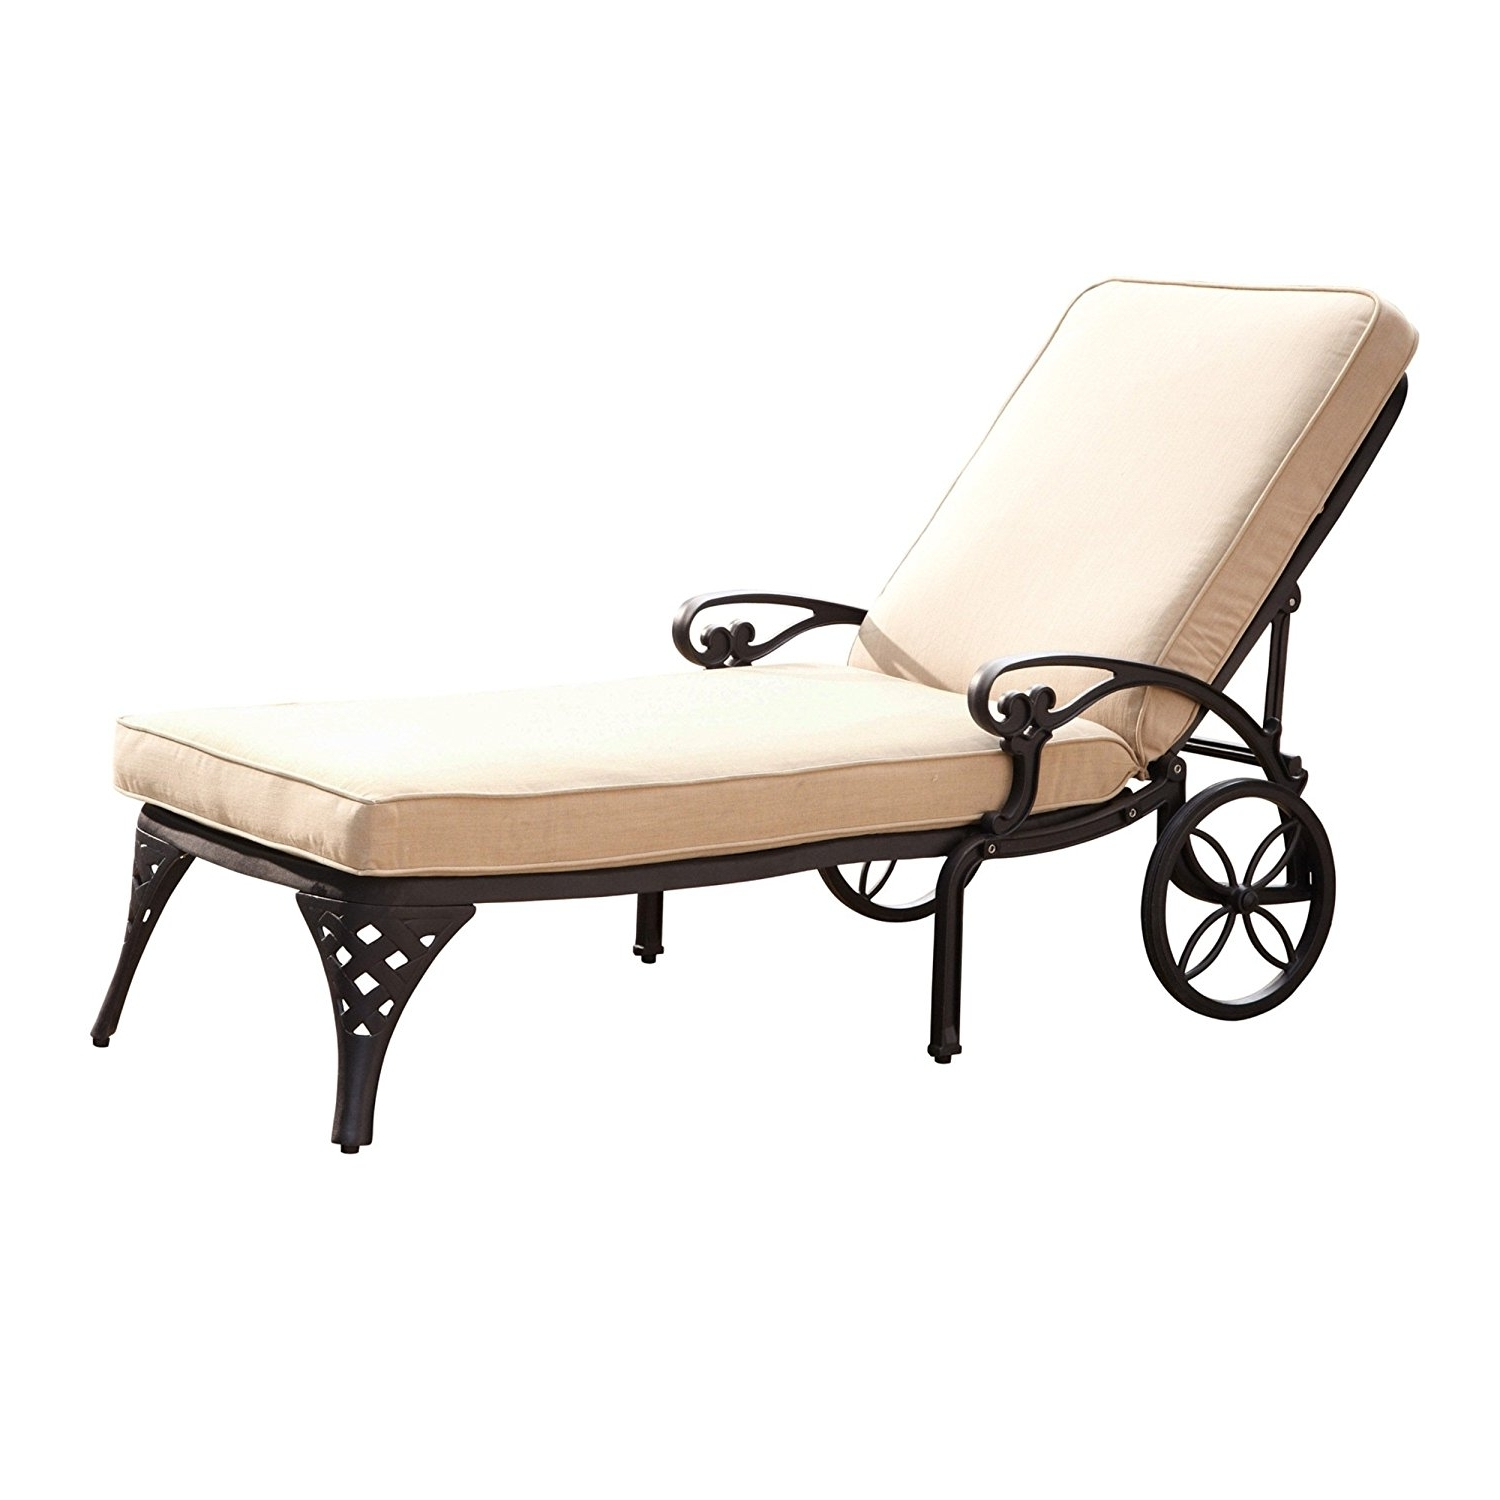 Favorite Metal Chaise Lounge Chairs Pertaining To Amazon : Home Styles Biscayne Chaise Lounge Chair, Taupe (View 15 of 15)